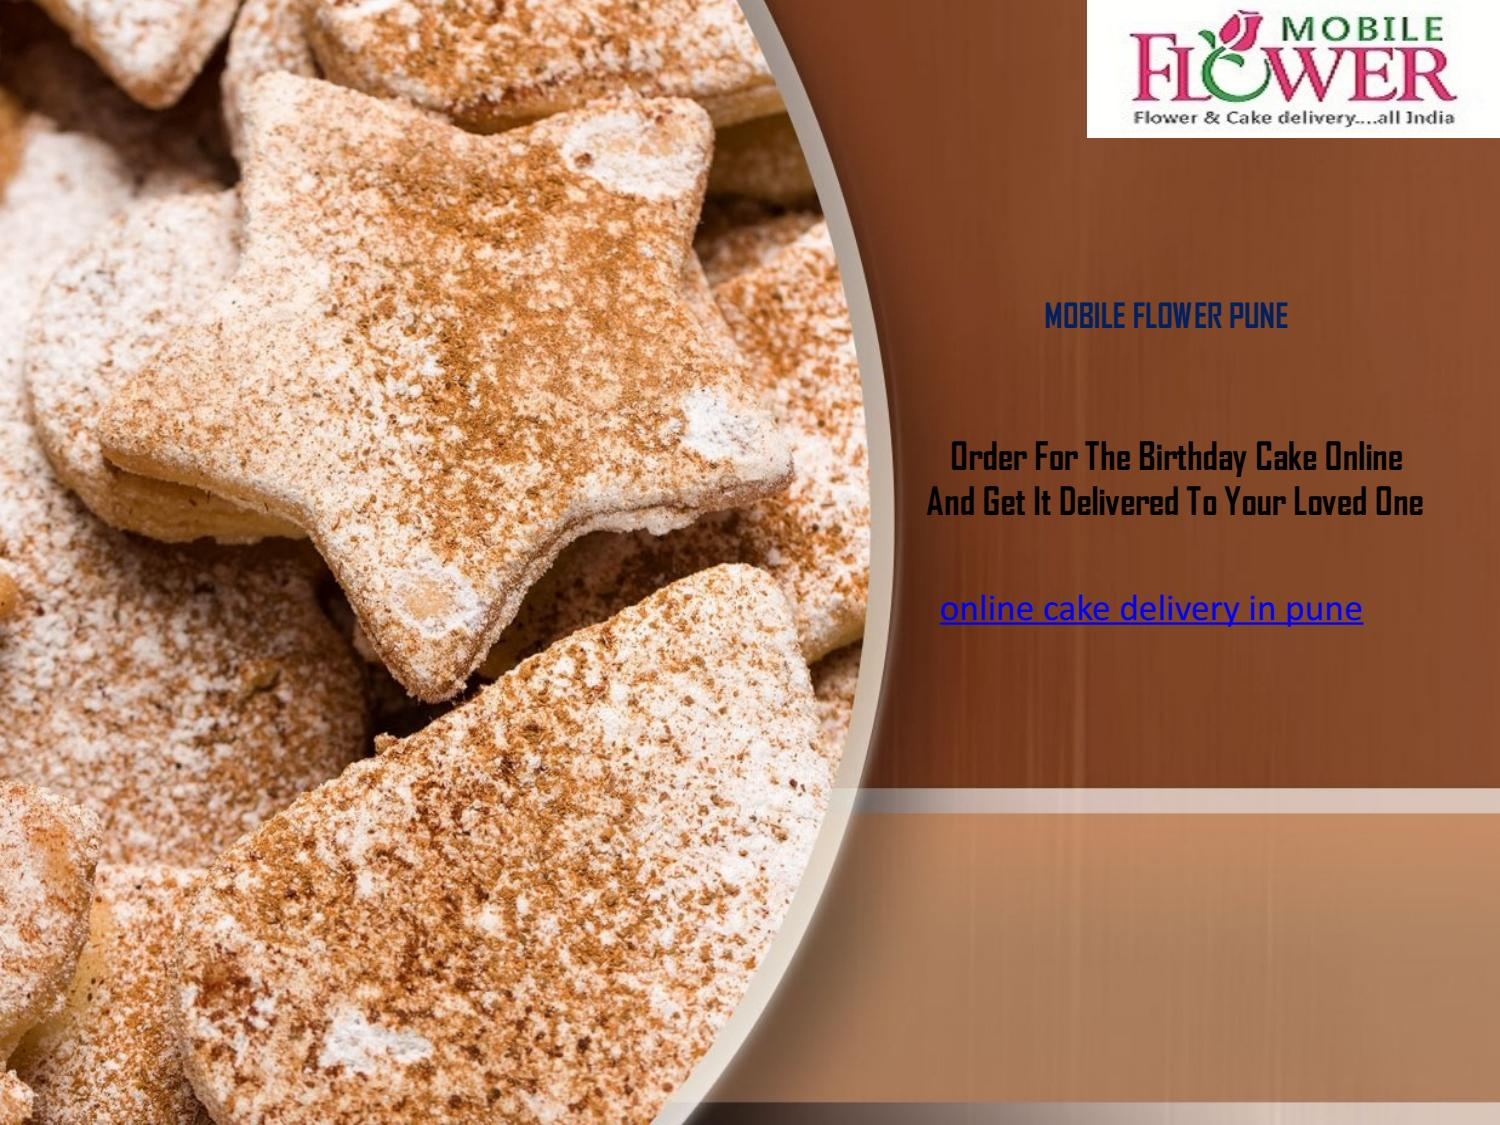 Order For The Birthday Cake Online And Get It Delivered To Your Loved One By Mobile Flower Pune